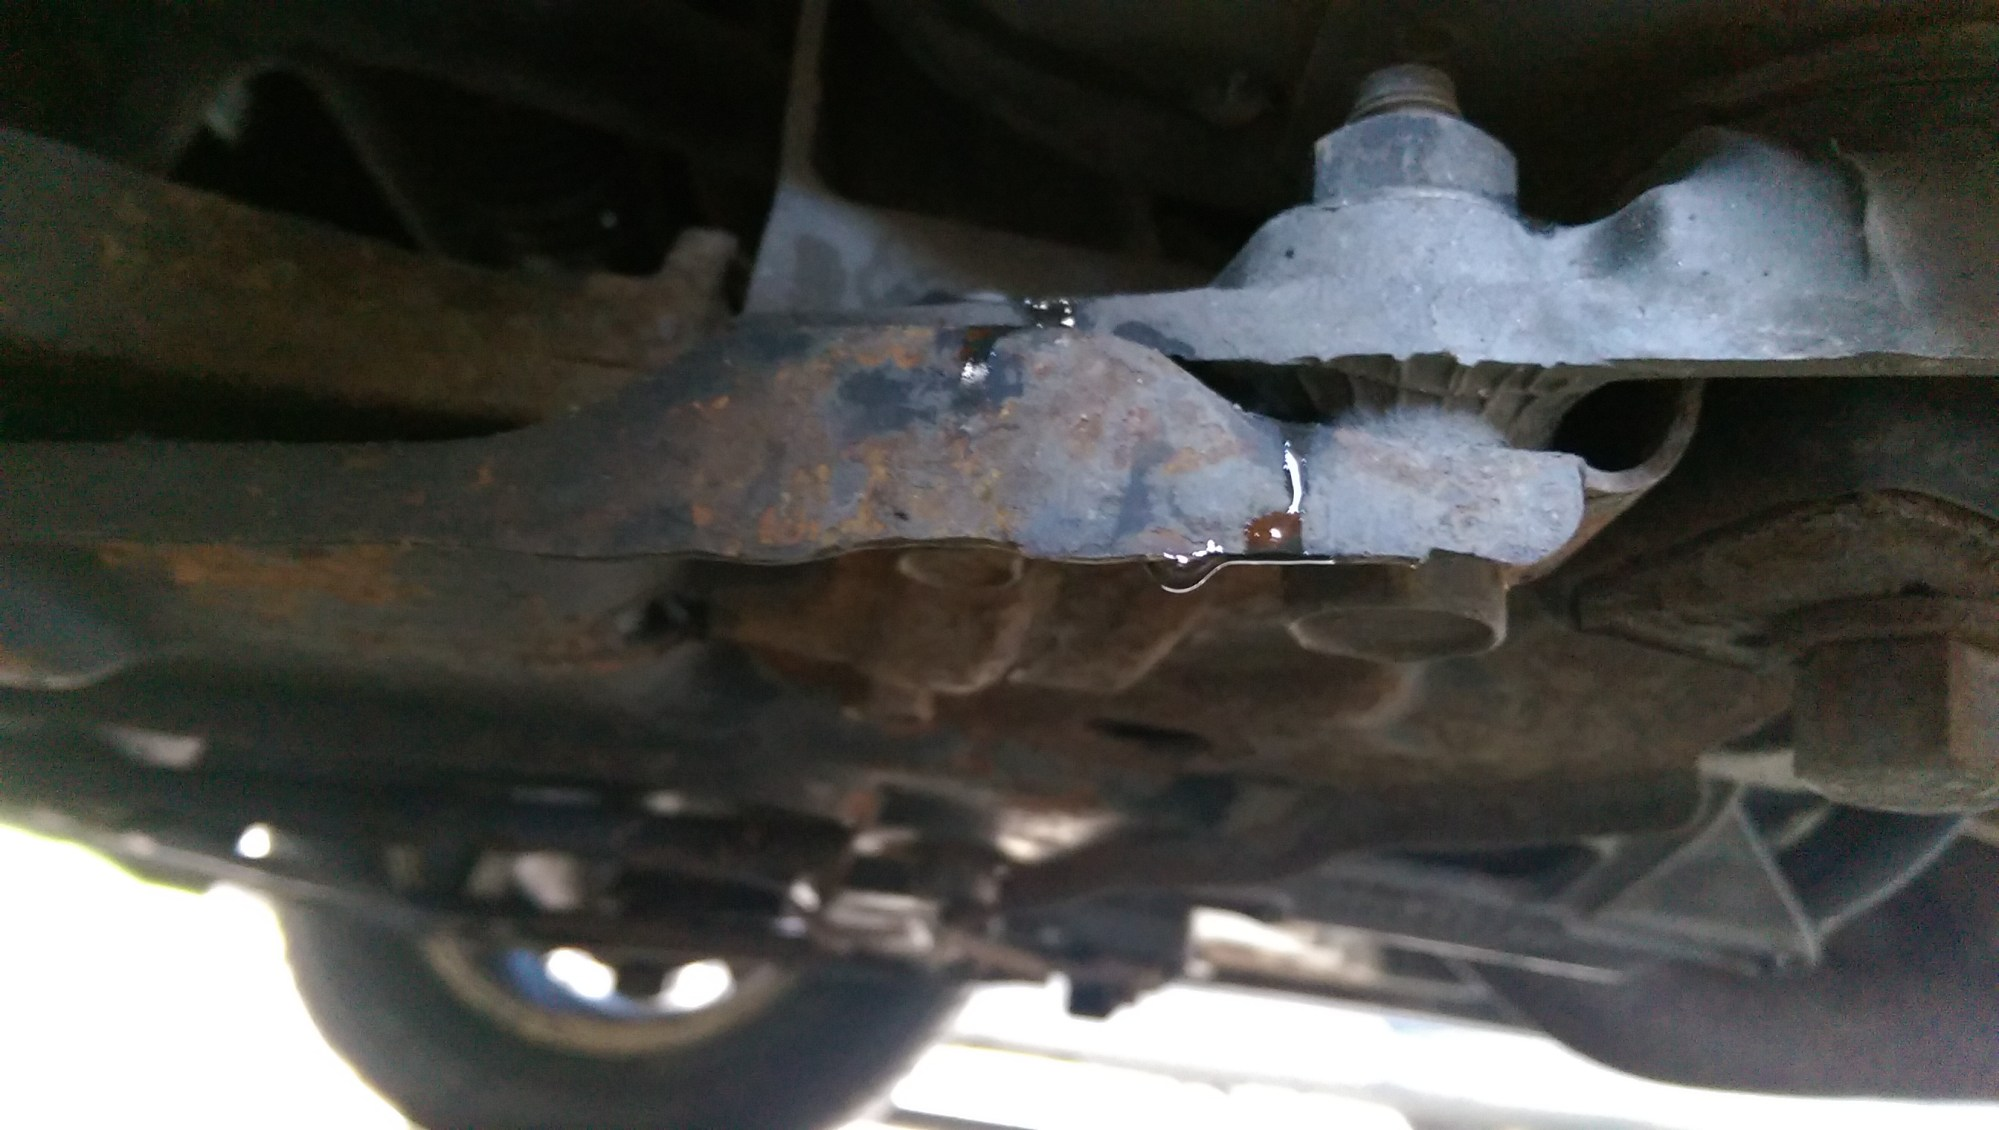 hight resolution of coolant leak again trying to identify imag1499 jpg